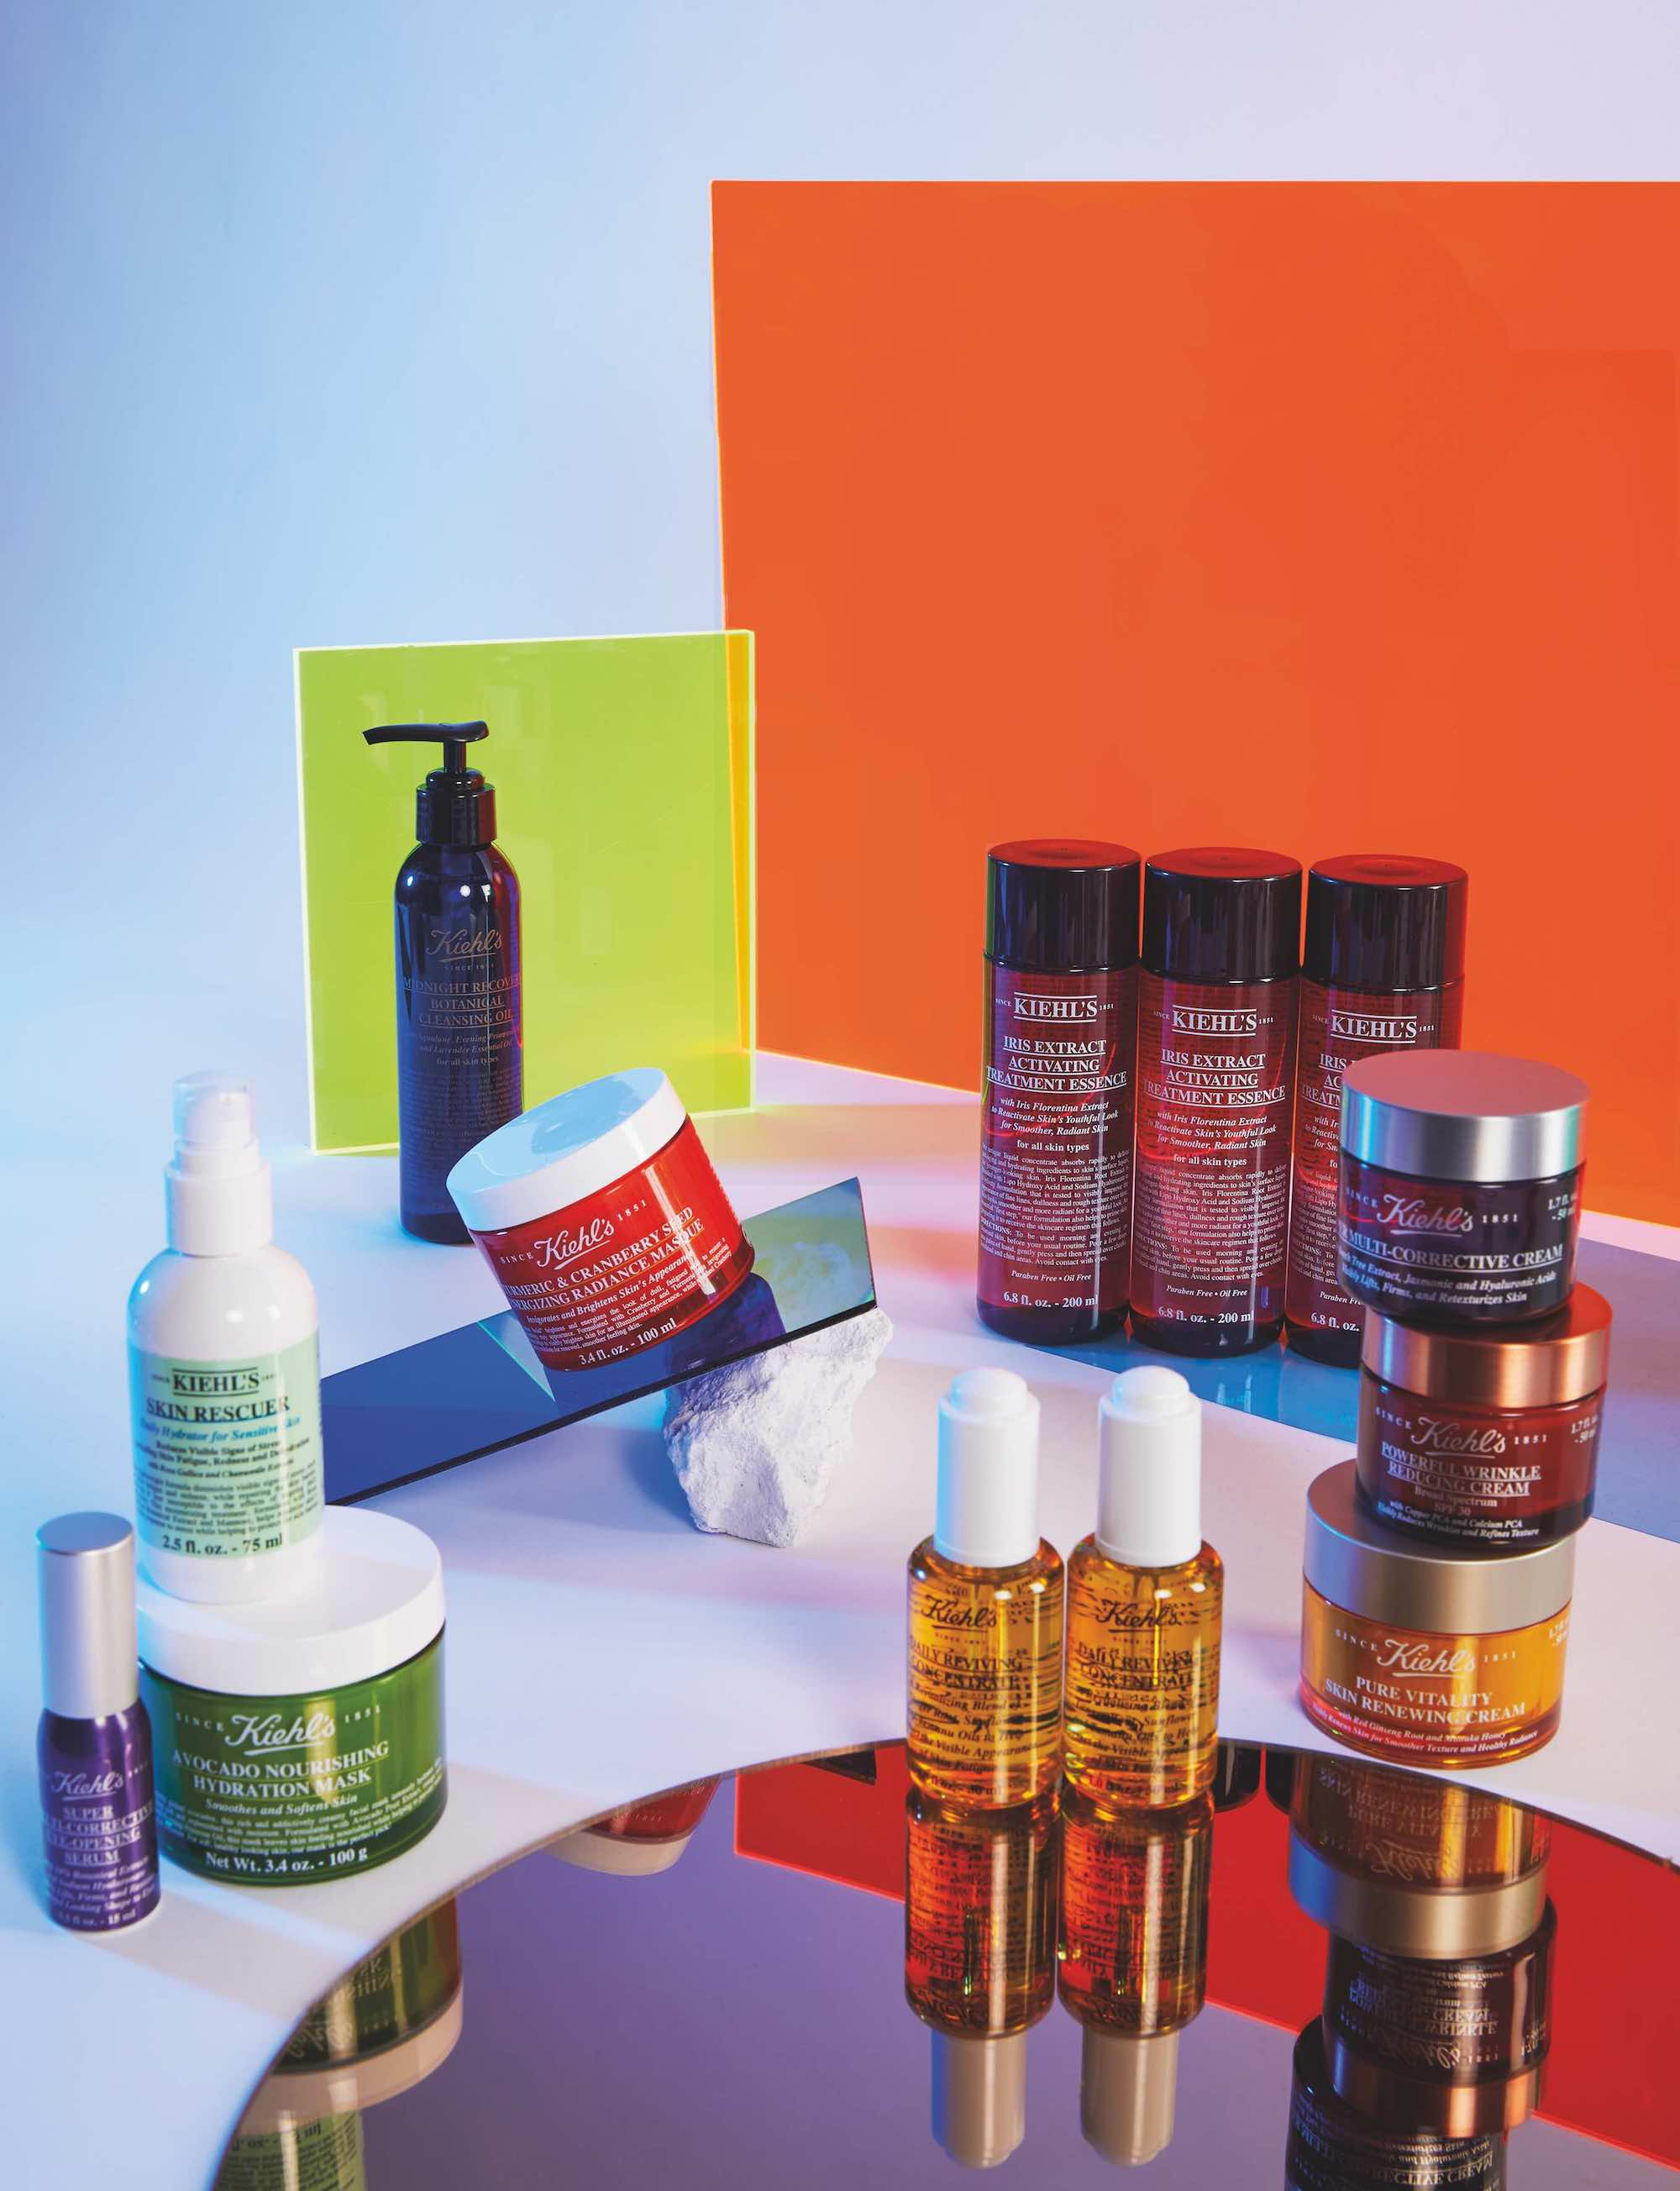 Kiehl's x Pride in Summer 19 issue of Wonderland products